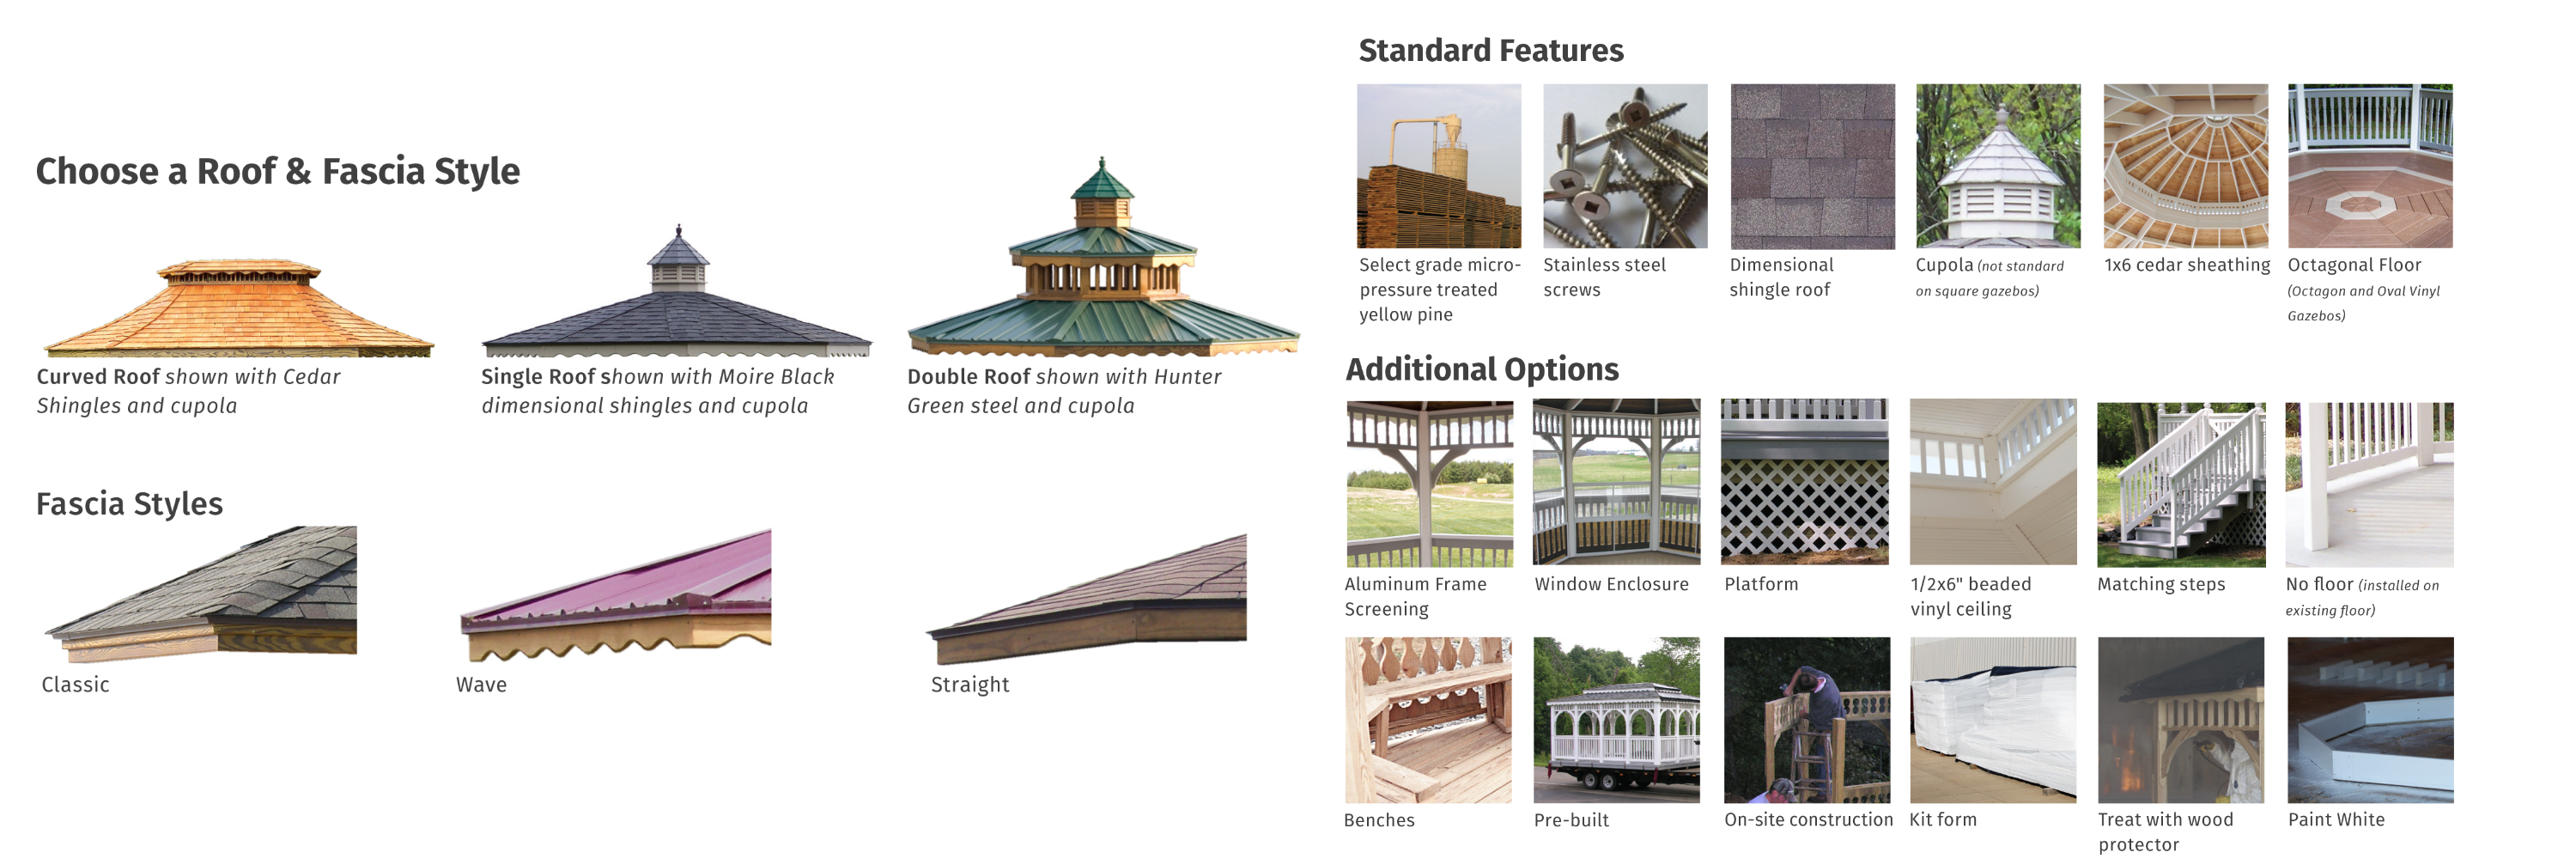 roof-and-features-and-options-for-website-2019.png